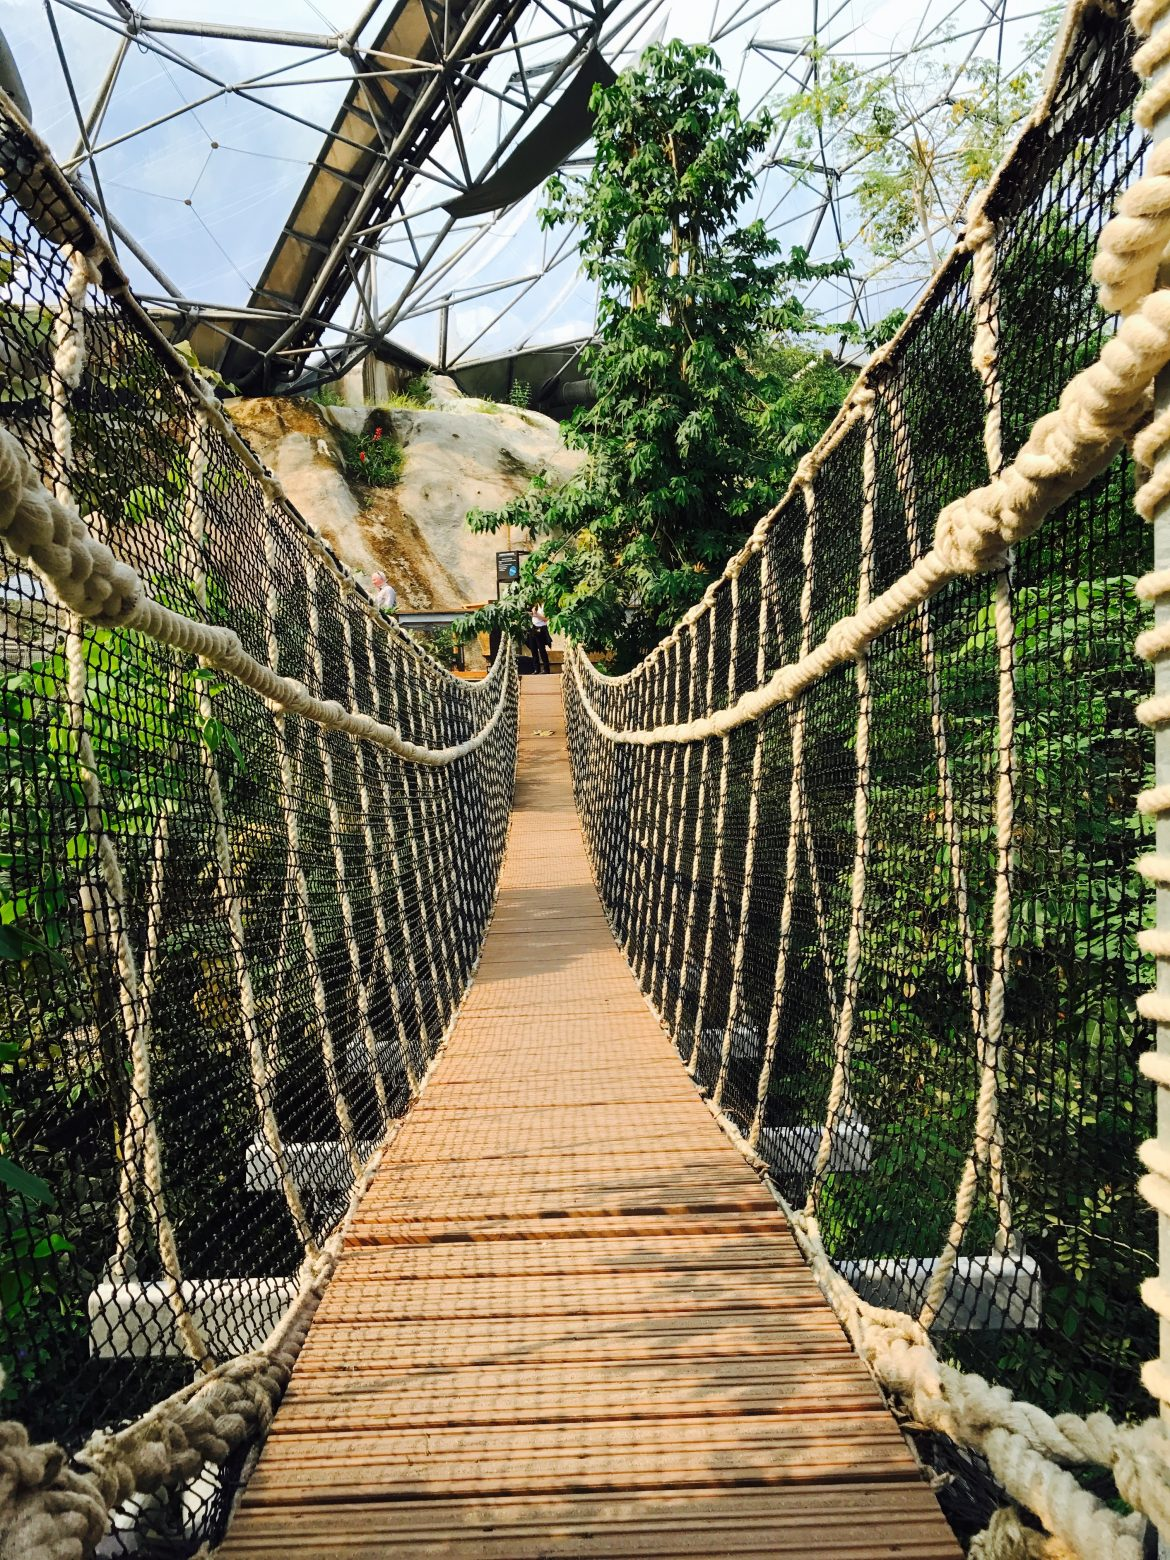 Rainforest biome canopy walk